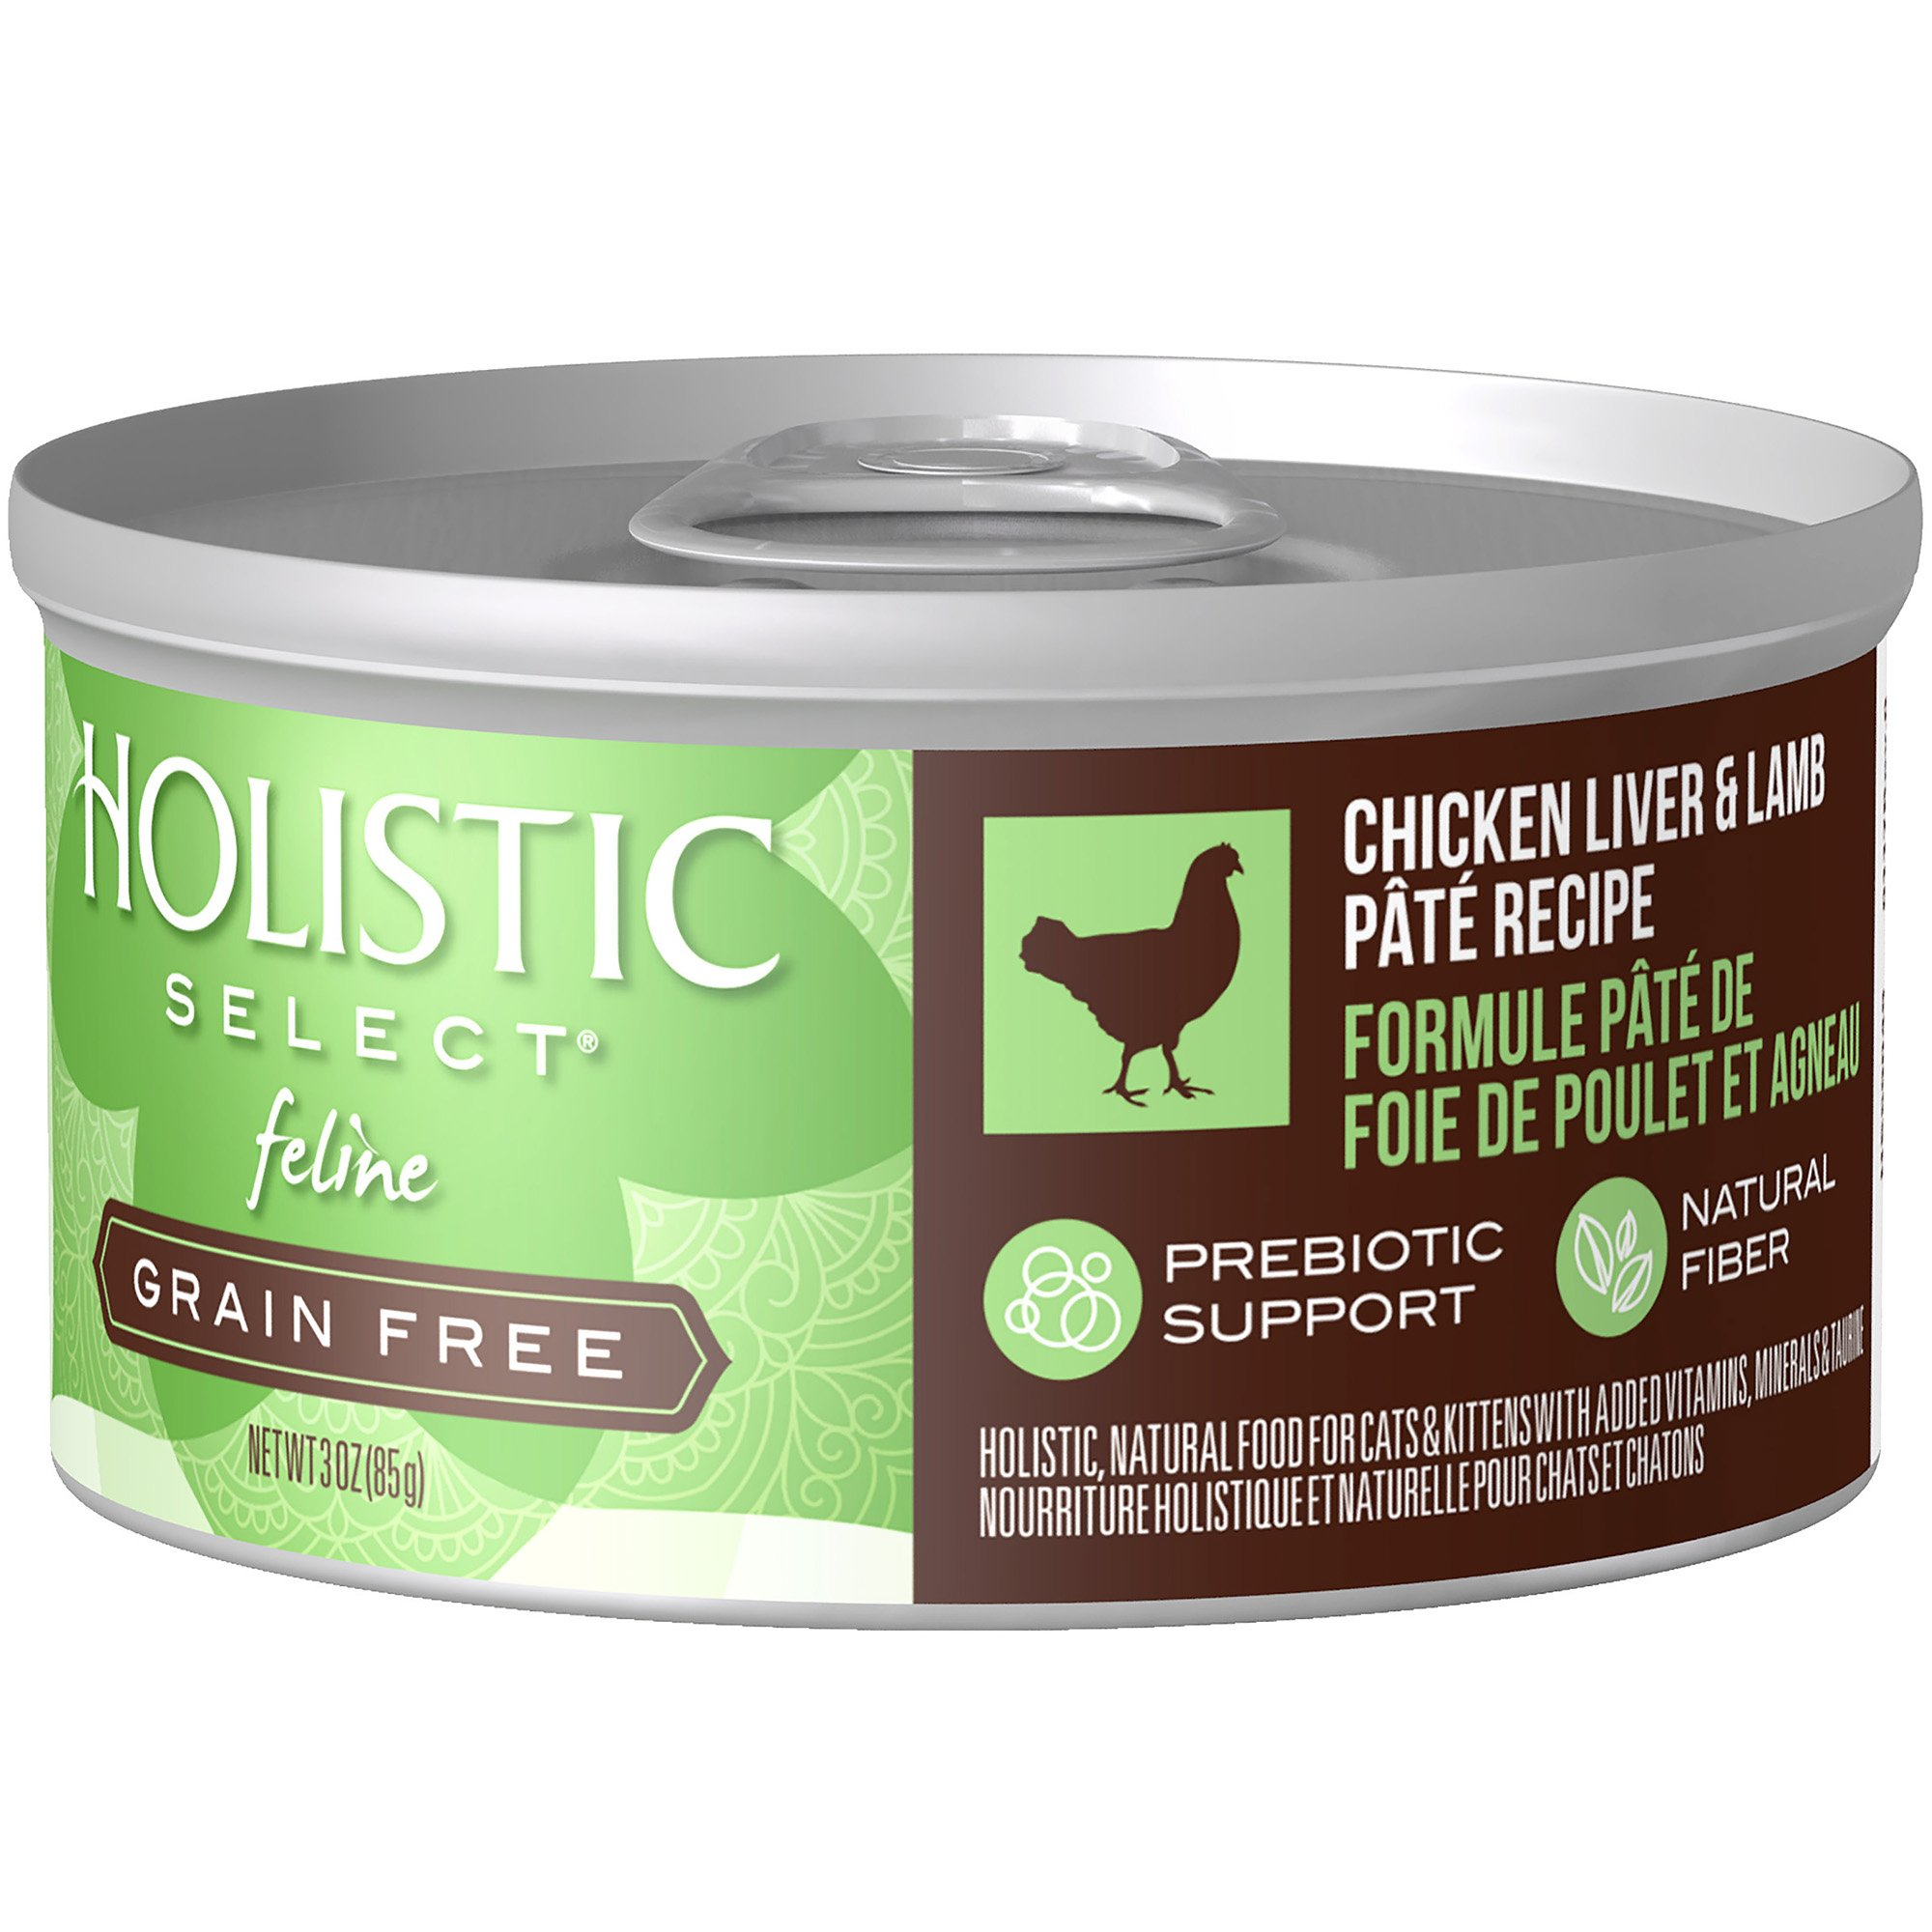 Holistic select natural wet grain free canned cat food chicken holistic select natural wet grain free canned cat food chicken liver lamb pt recipe 3 ounce can pack of 24 forumfinder Image collections